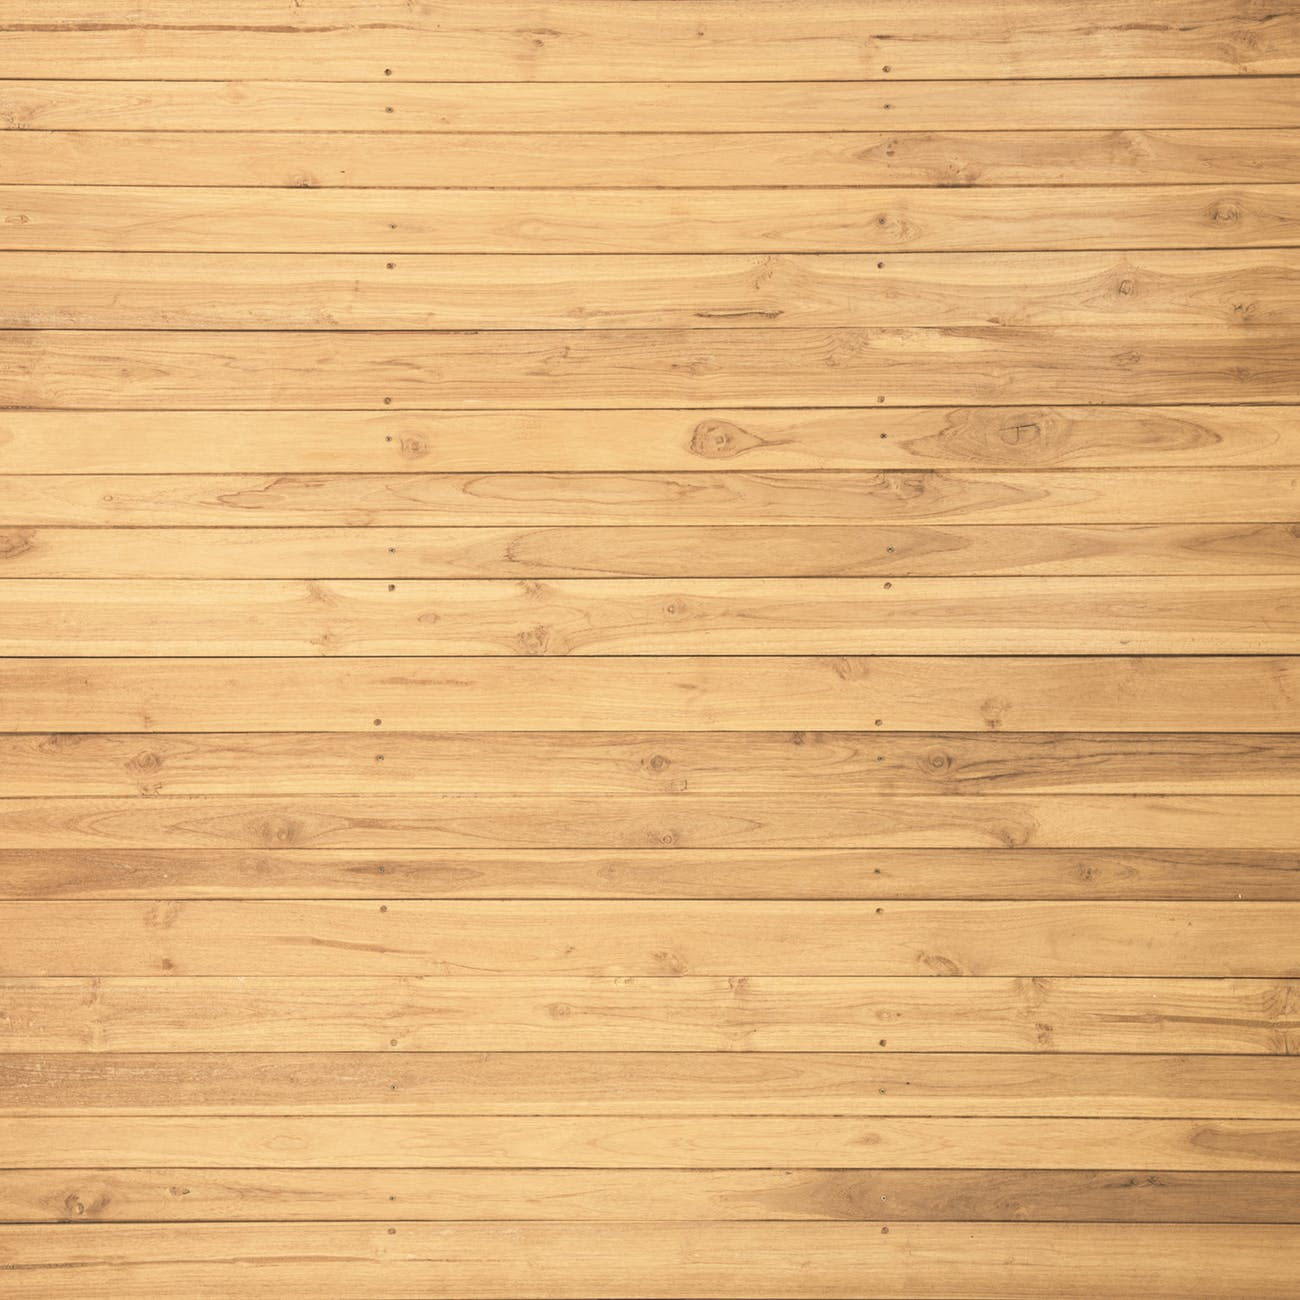 A complete guide to choose the right flooring for your home